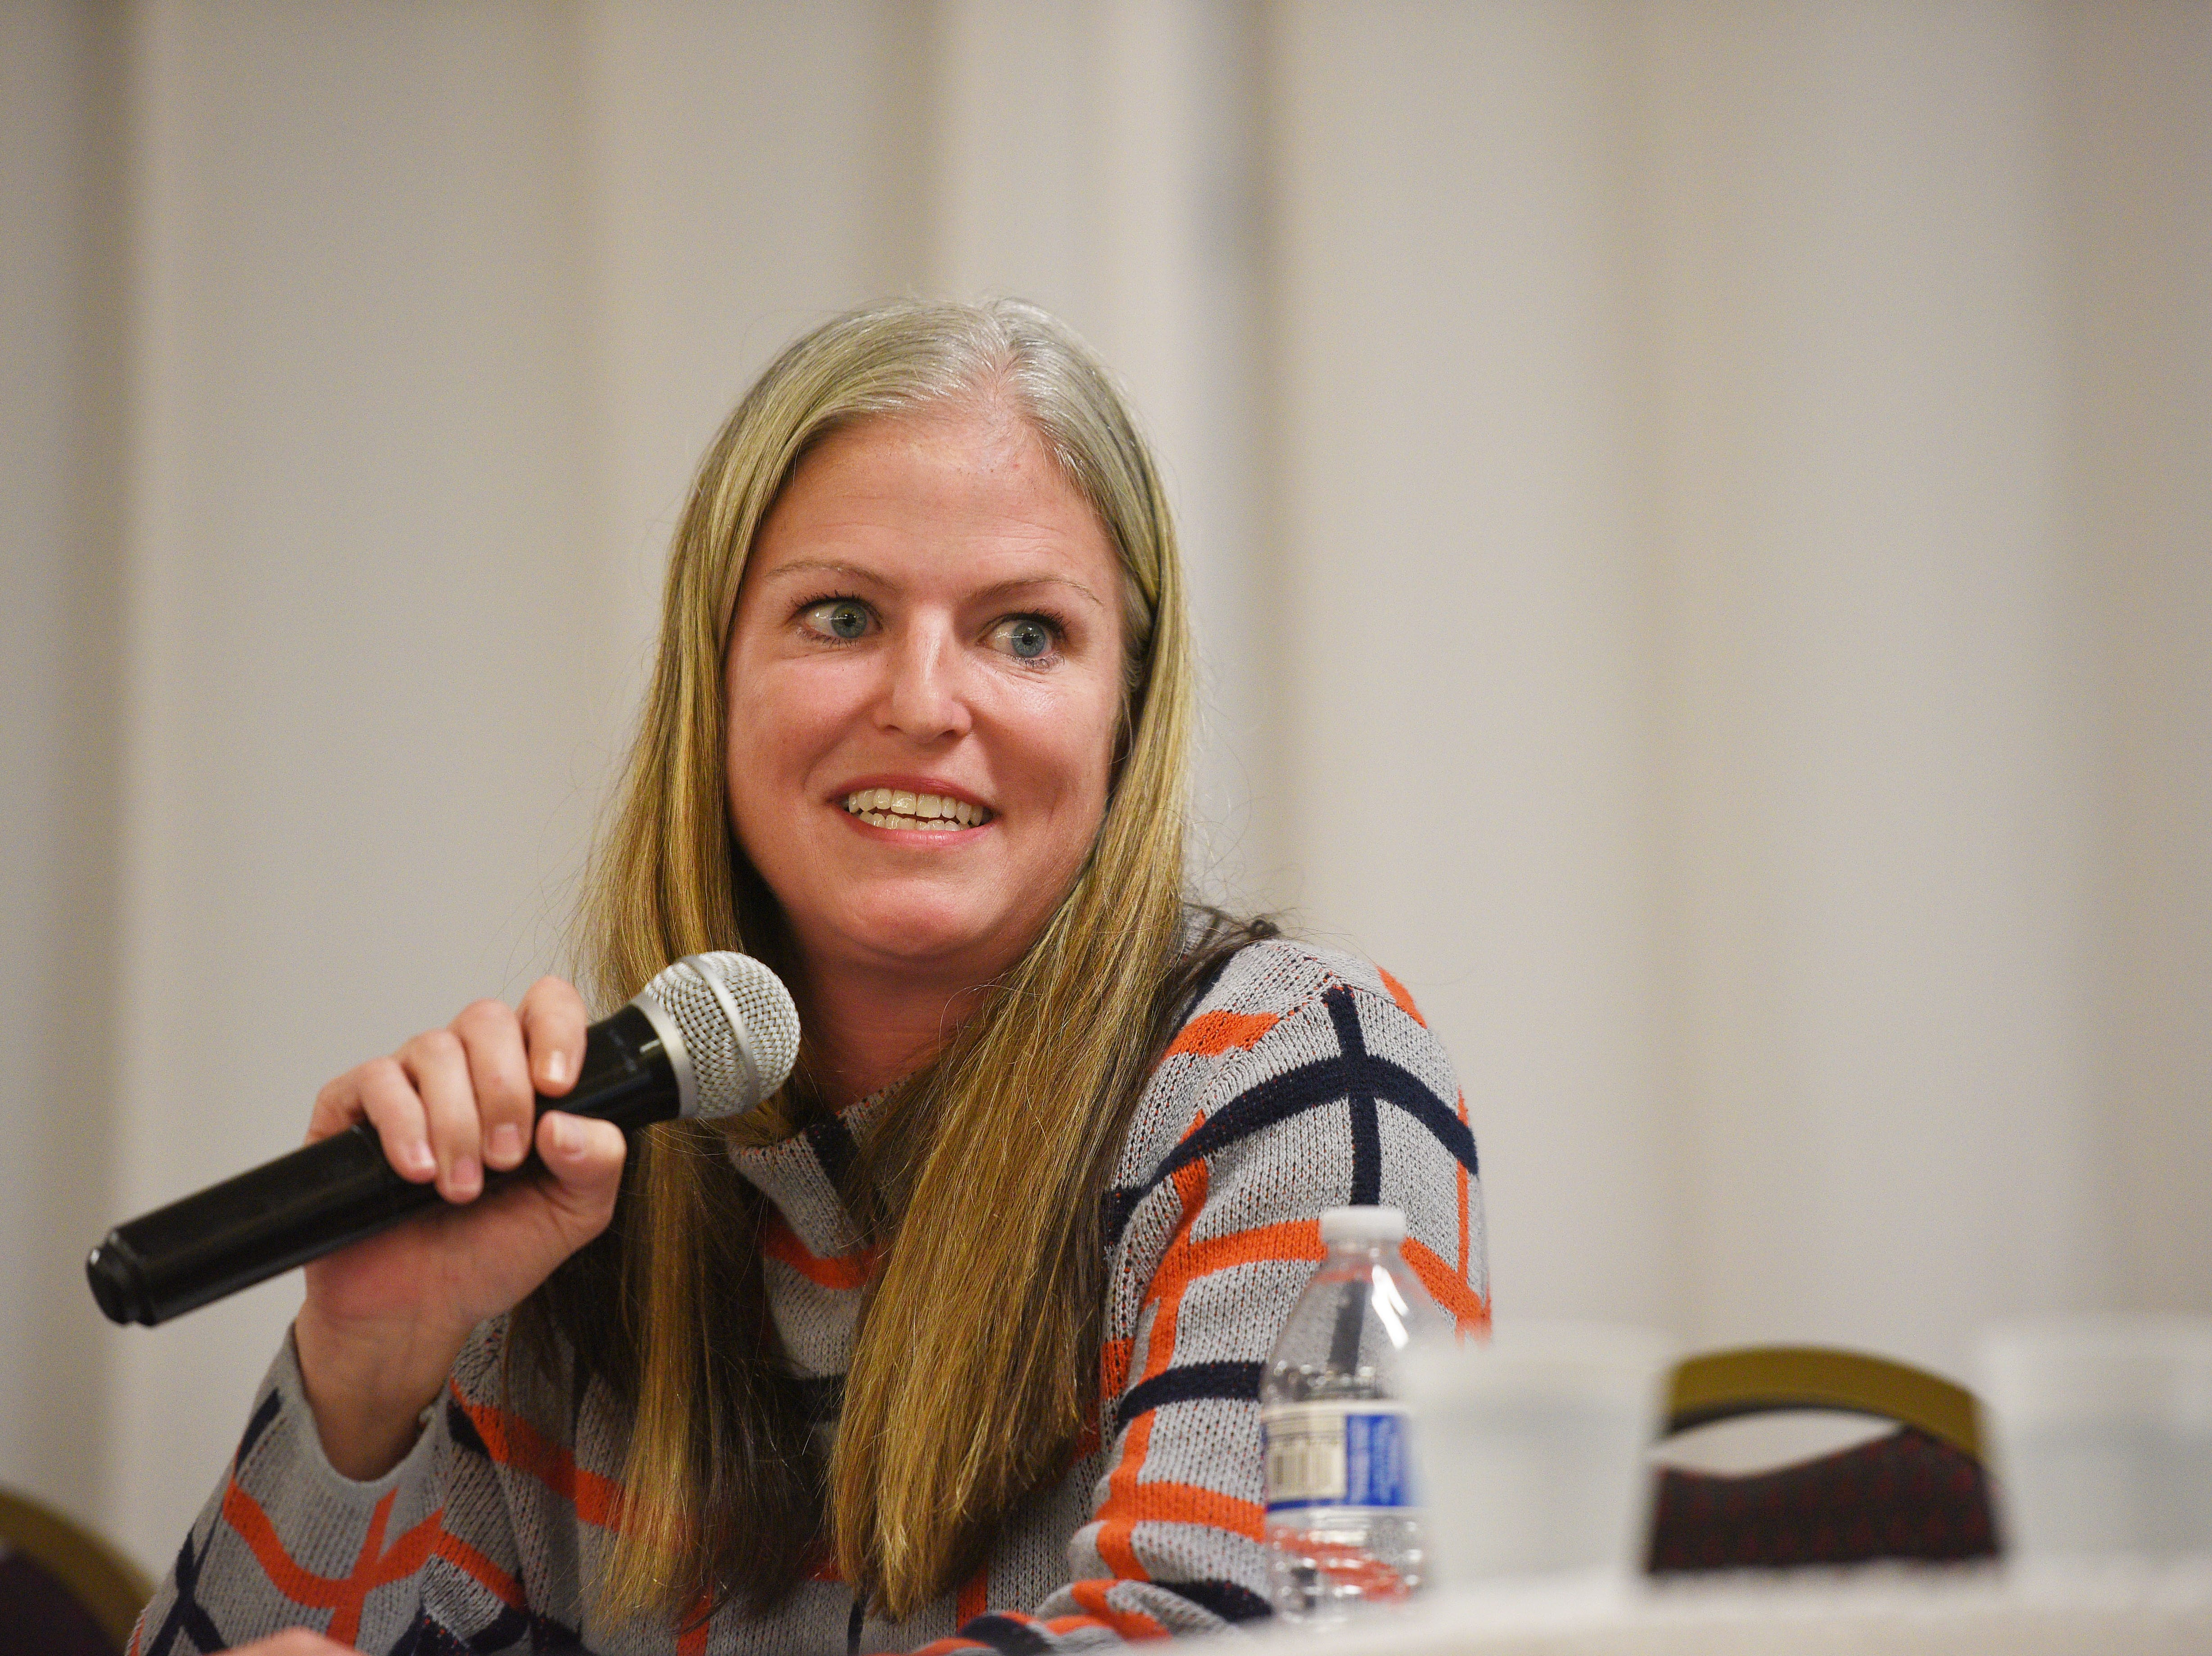 Legislative candidate Toni Miller (D) answers questions from constituents Thursday, Sept. 27, at Dakota Plains Event Center in Hartford. Candidates discussed Initiated Measure 22, health care and spending priorities.